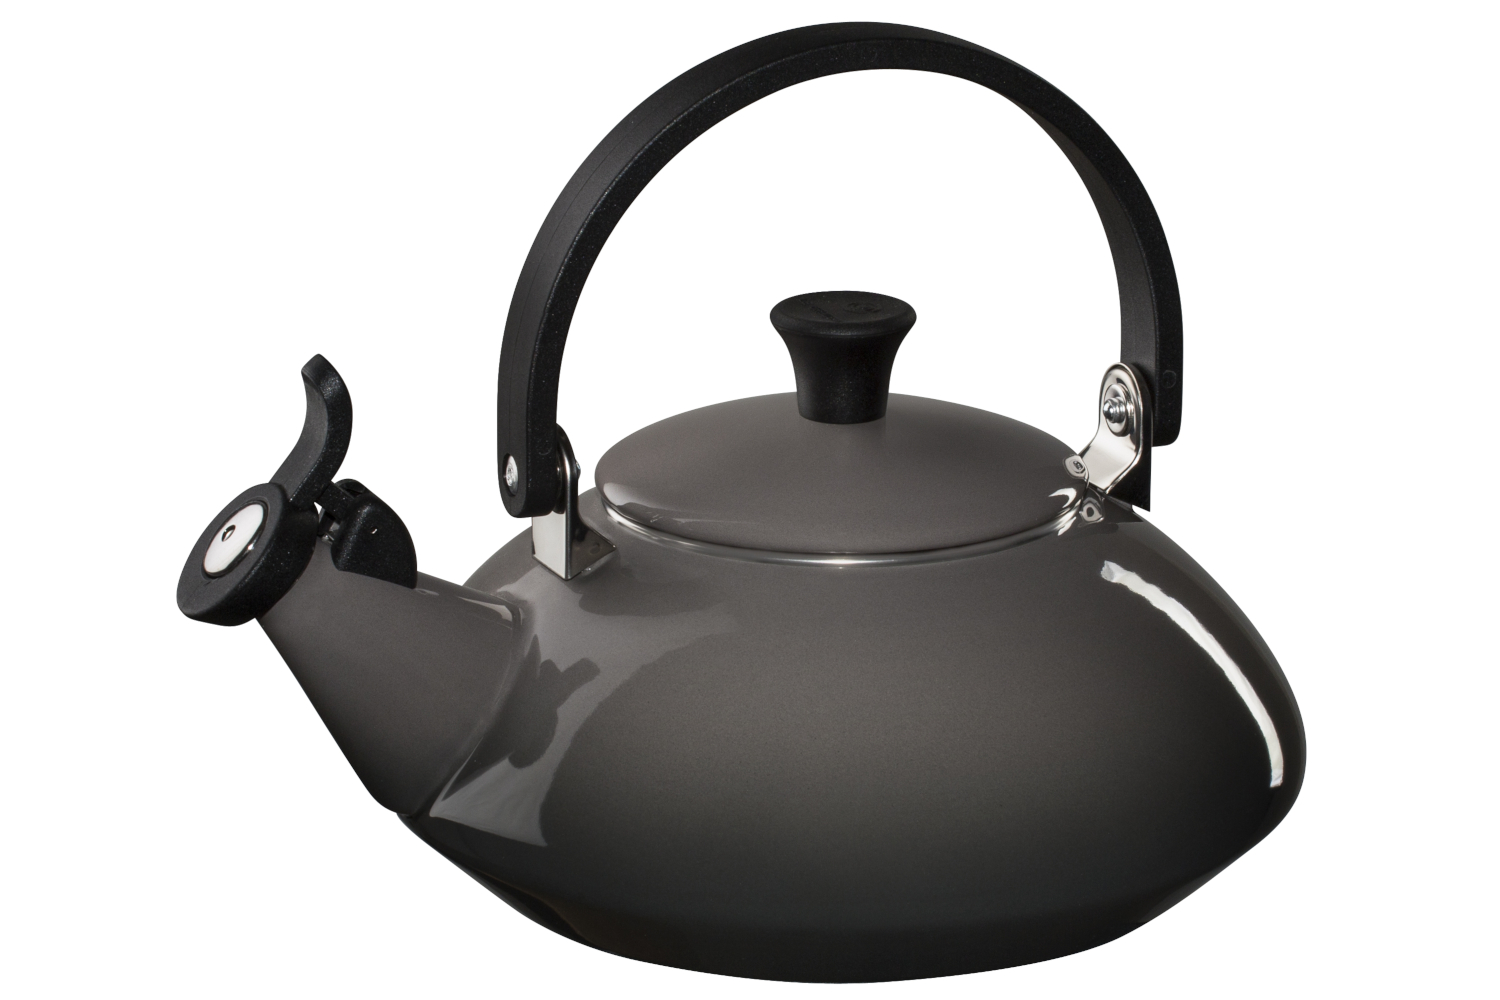 Le Creuset Enamel on Steel Zen Tea Kettle - Oyster